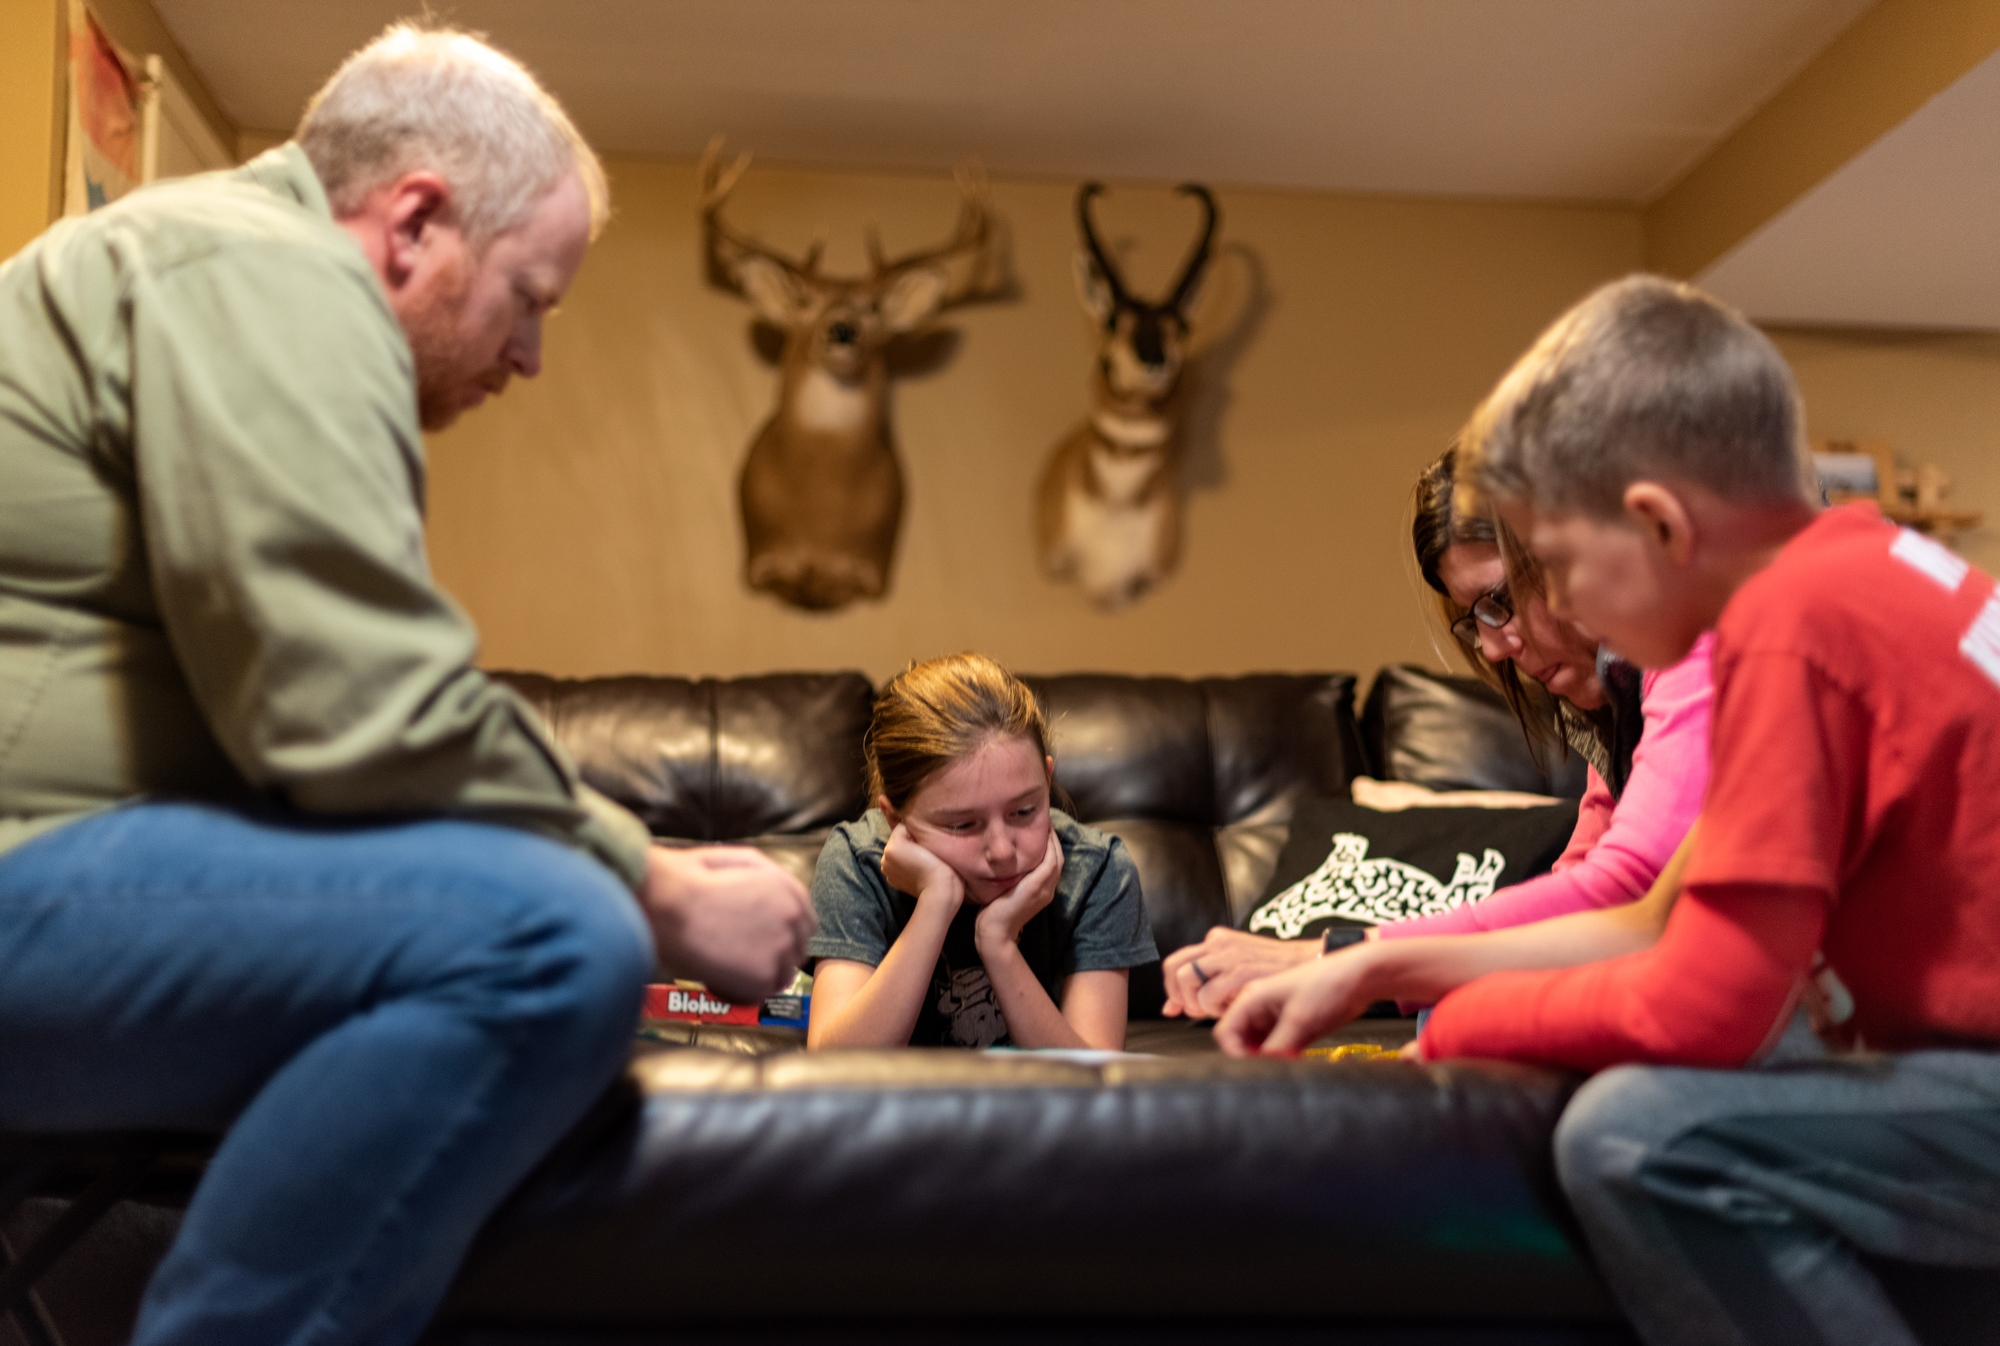 """Callie Jennings, center, plays a board game with her dad, Michael Jennings, mom, Pam Jennings, and brother, Clayton Jennings, on November 26, 2018 north of Columbia, Mo. """"Callie is a board game fanatic,"""" Pam Jennings said. """"Yeah but I'm really bad at them,"""" Callie responded."""